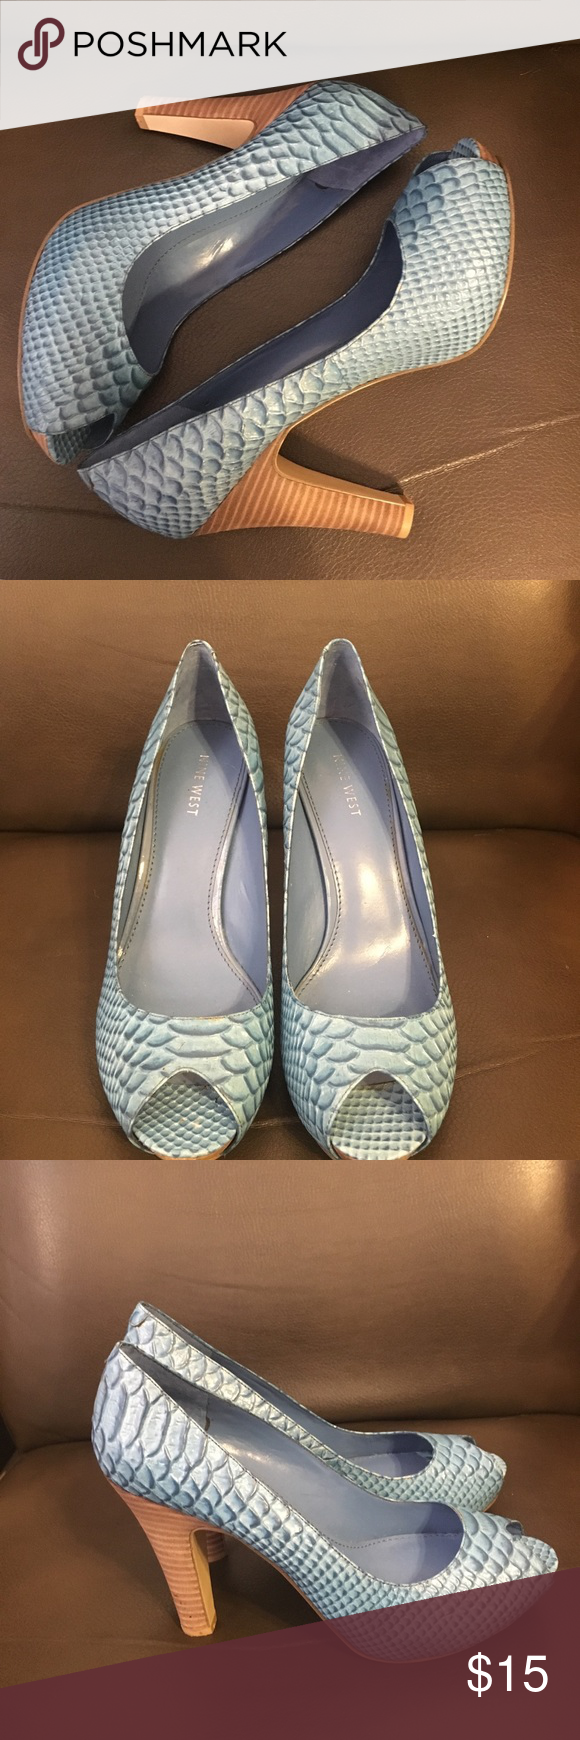 8698c9708f9d NWOT Nine West Pumps NWOT Nine West peep toe leather embossed Pumps. Size 8  M. Comes from a smoke and pet free home. There is a small mark on the right  shoe ...